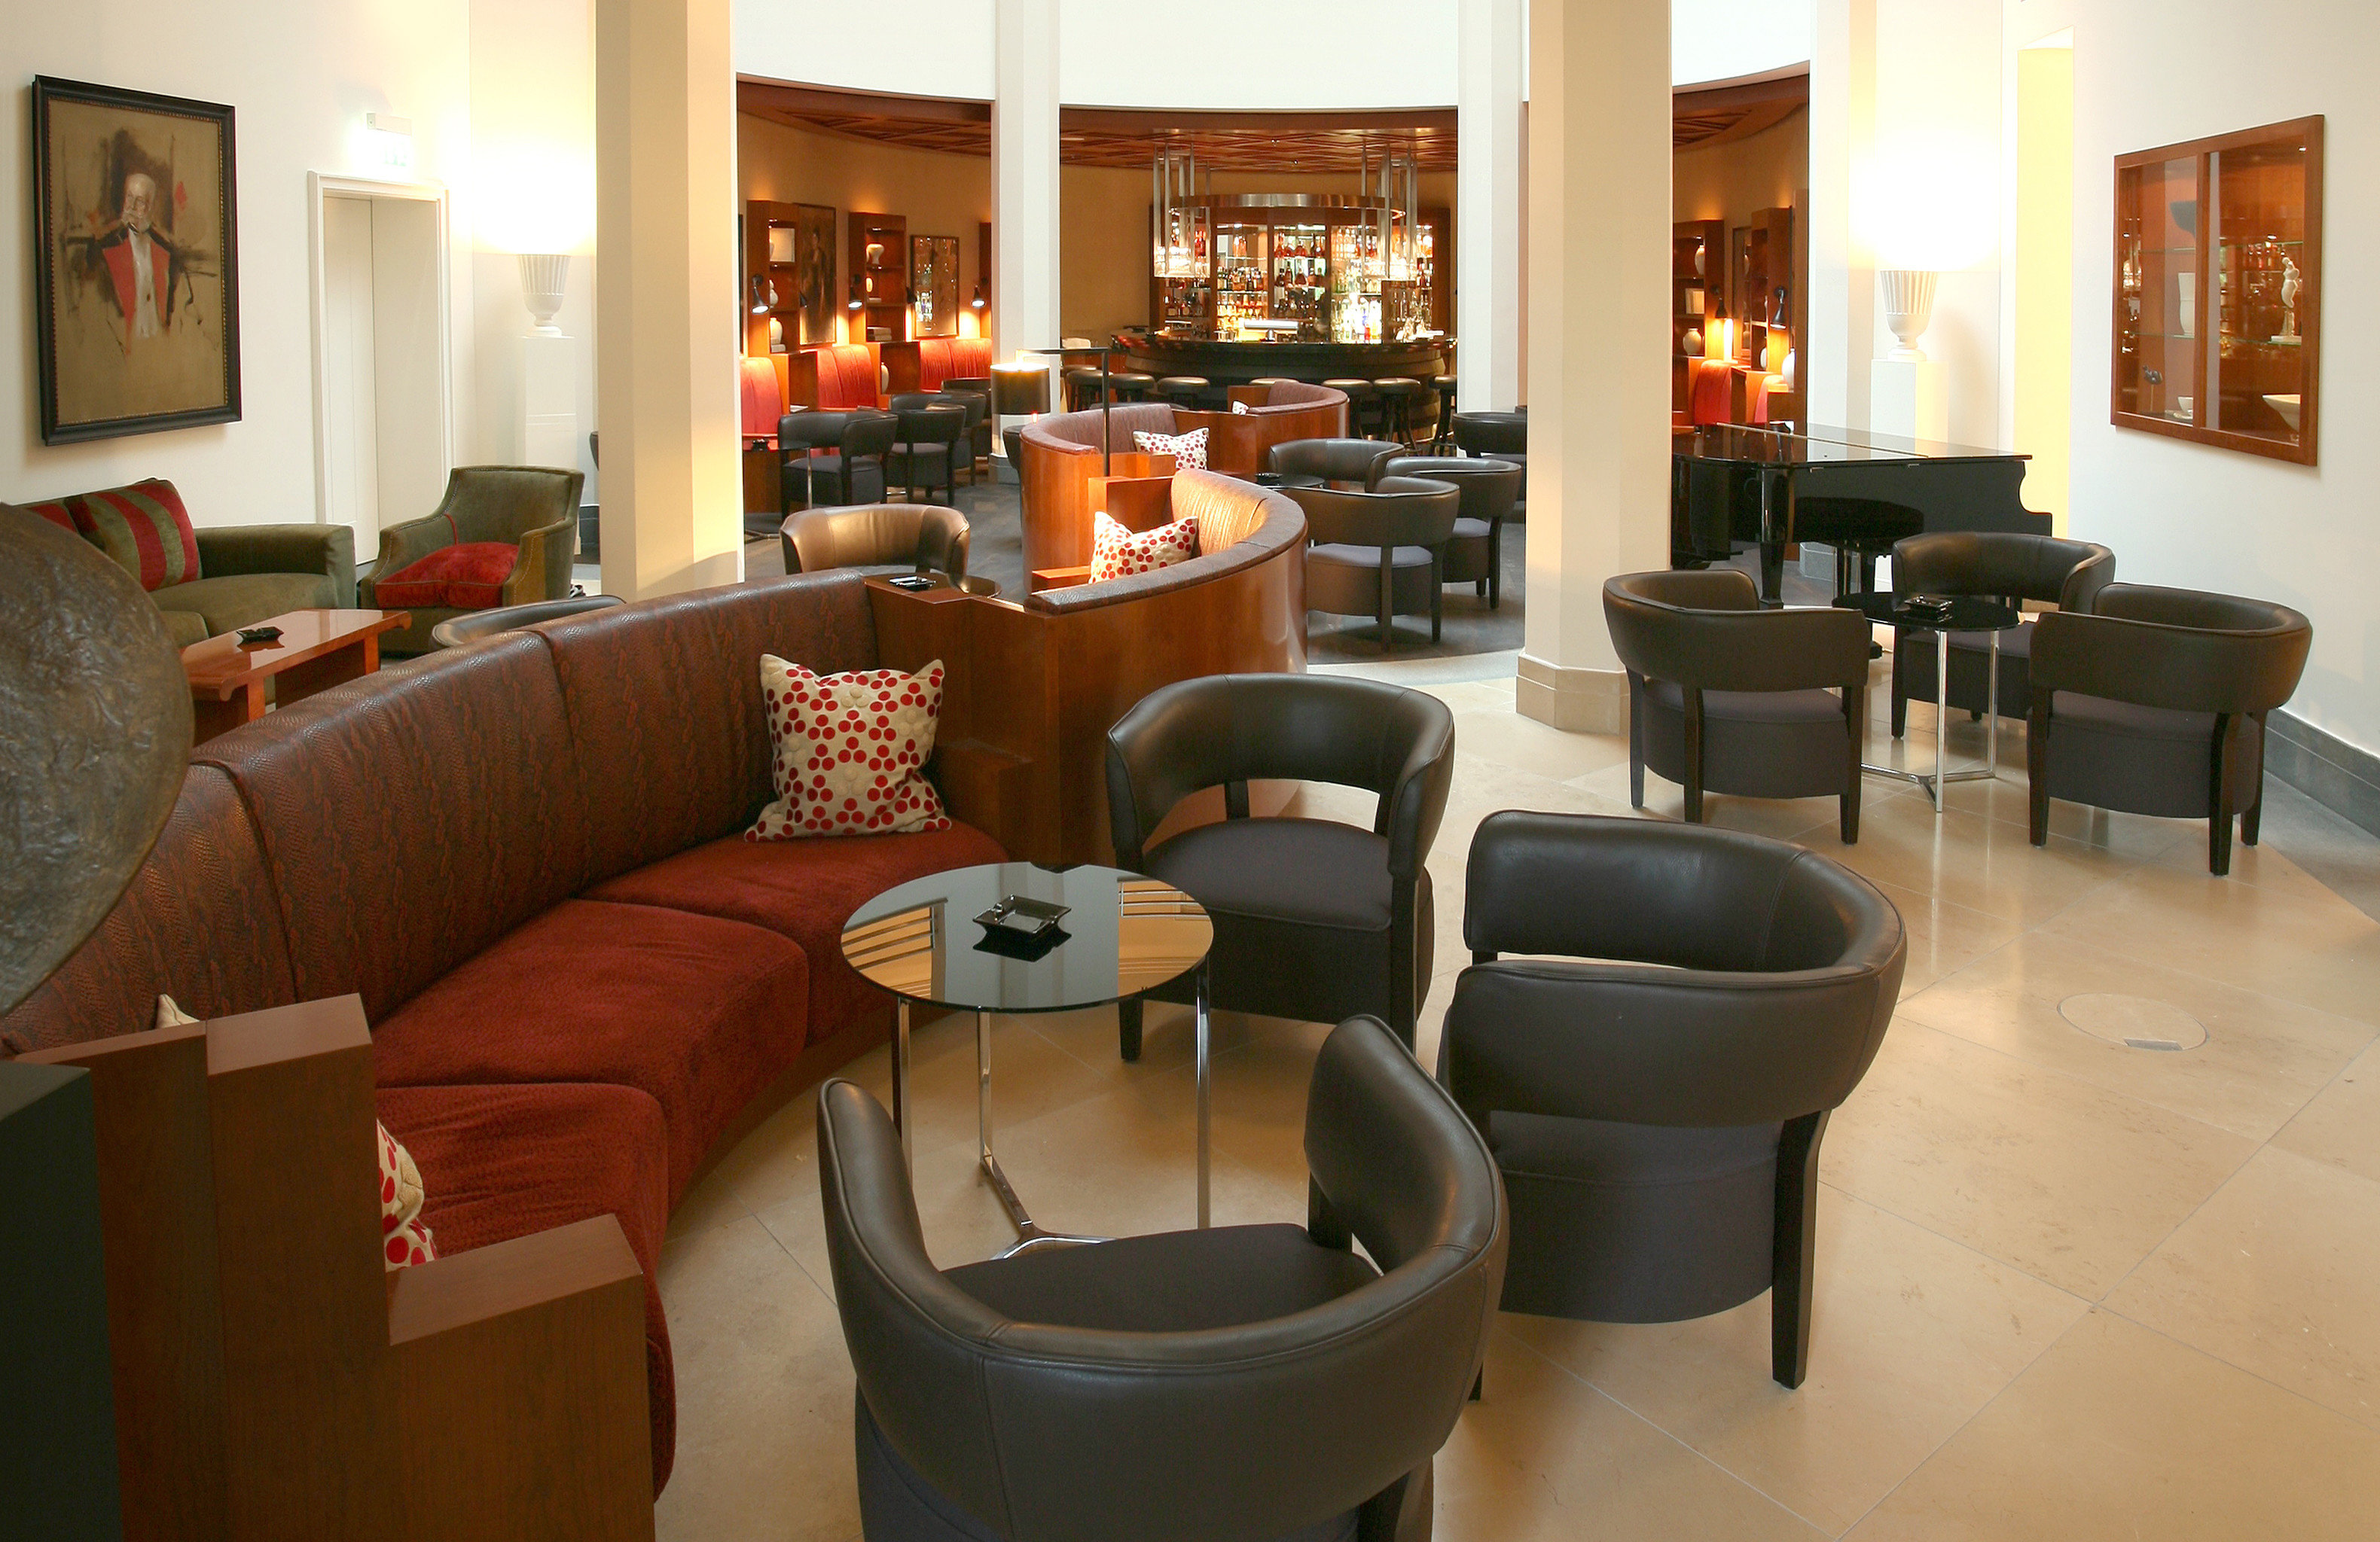 europe Germany Hotels Living Lounge Luxury Modern Munich indoor floor wall room property chair window living room home interior design estate Suite real estate furniture apartment area